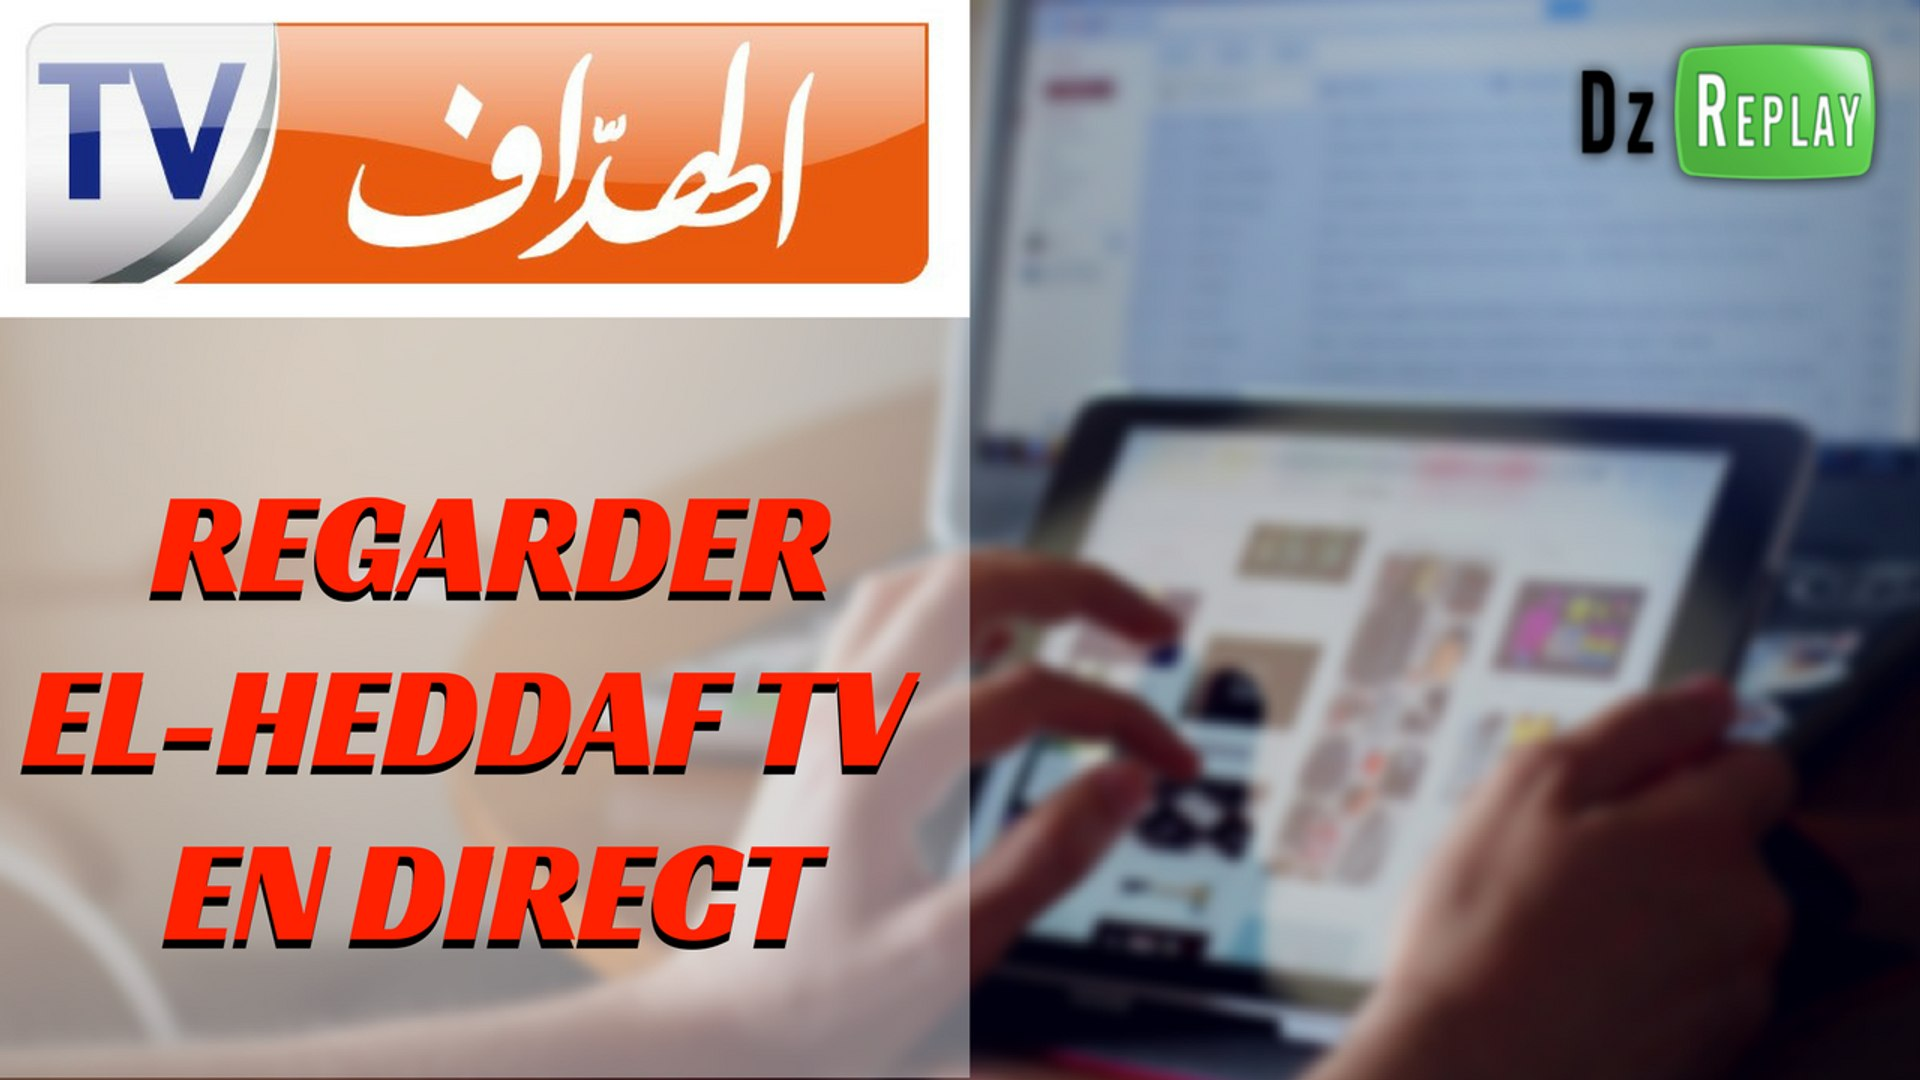 Comment regarder El-Heddaf TV en direct